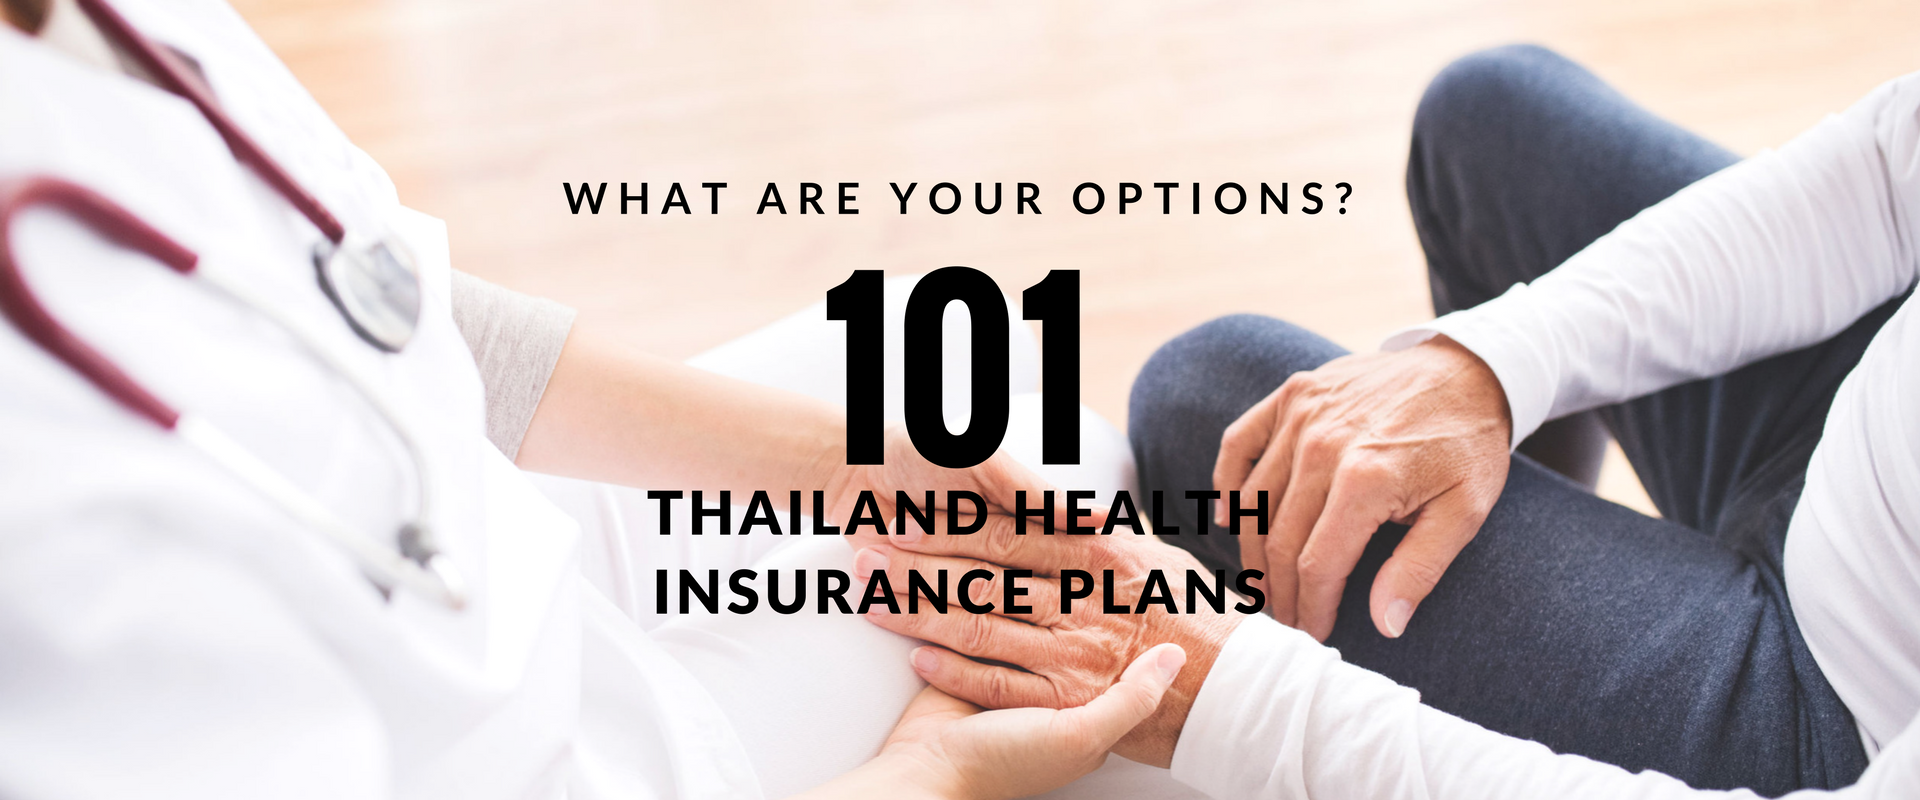 Thailand health insurance plans 101: What are your options?